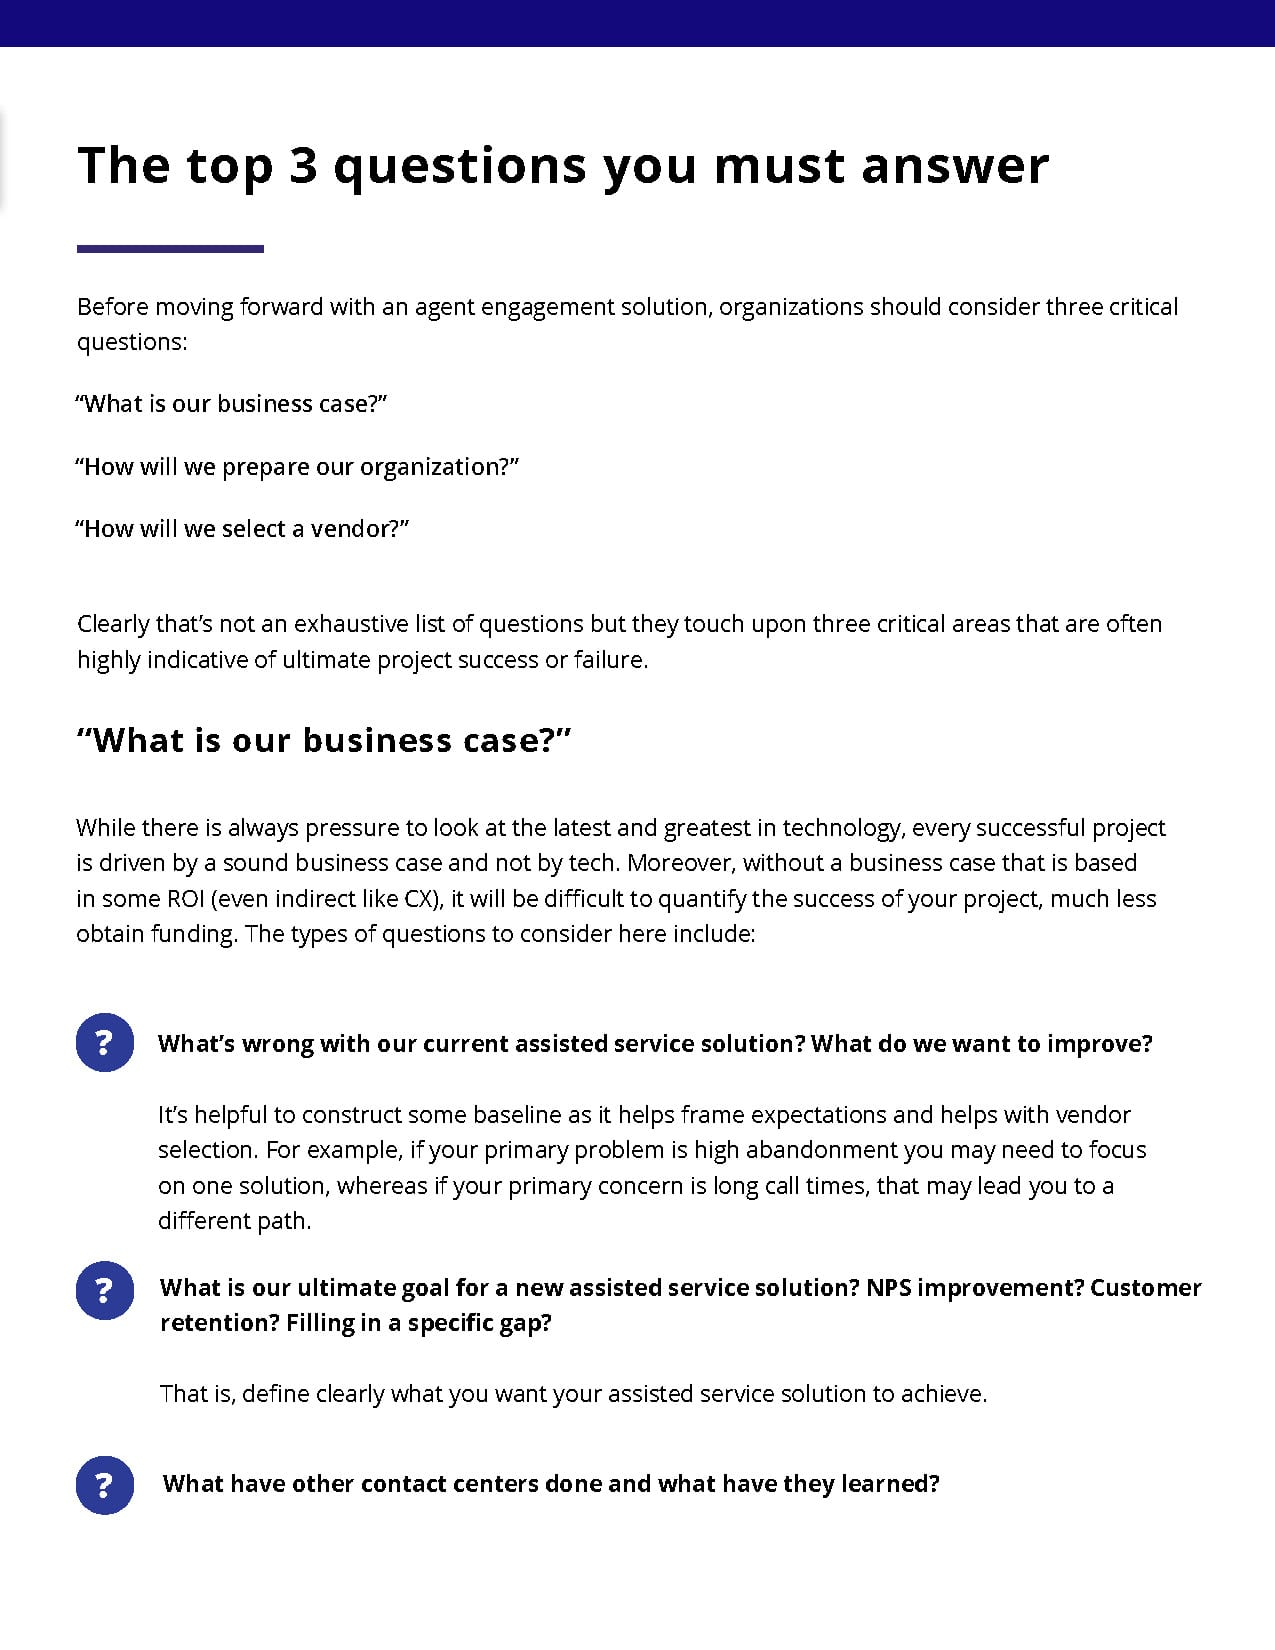 intelligent_contact_center_agent_engagement_guide_Page_11